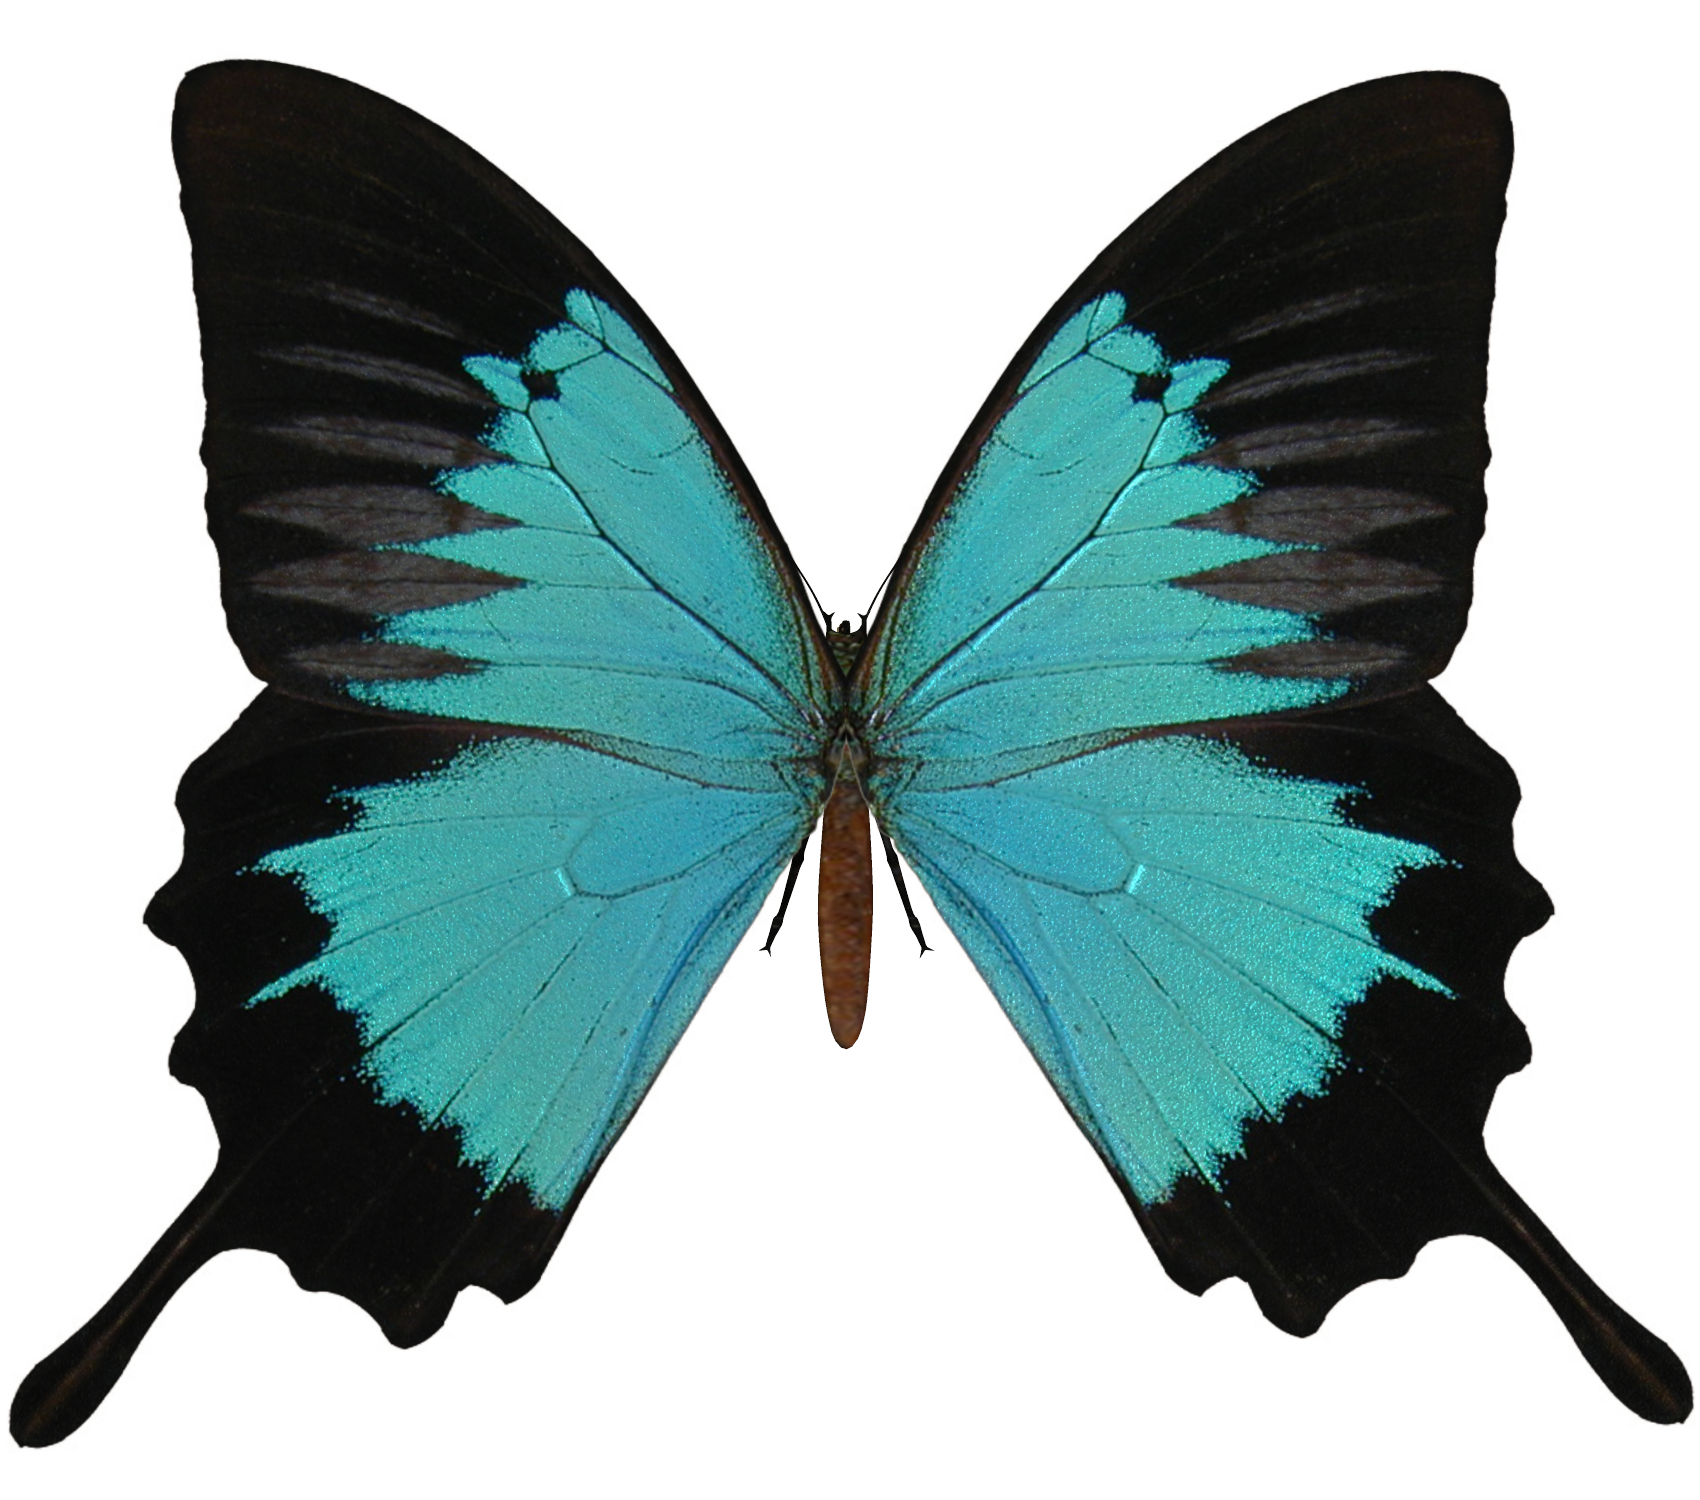 Butterfly Clip Art image #6724